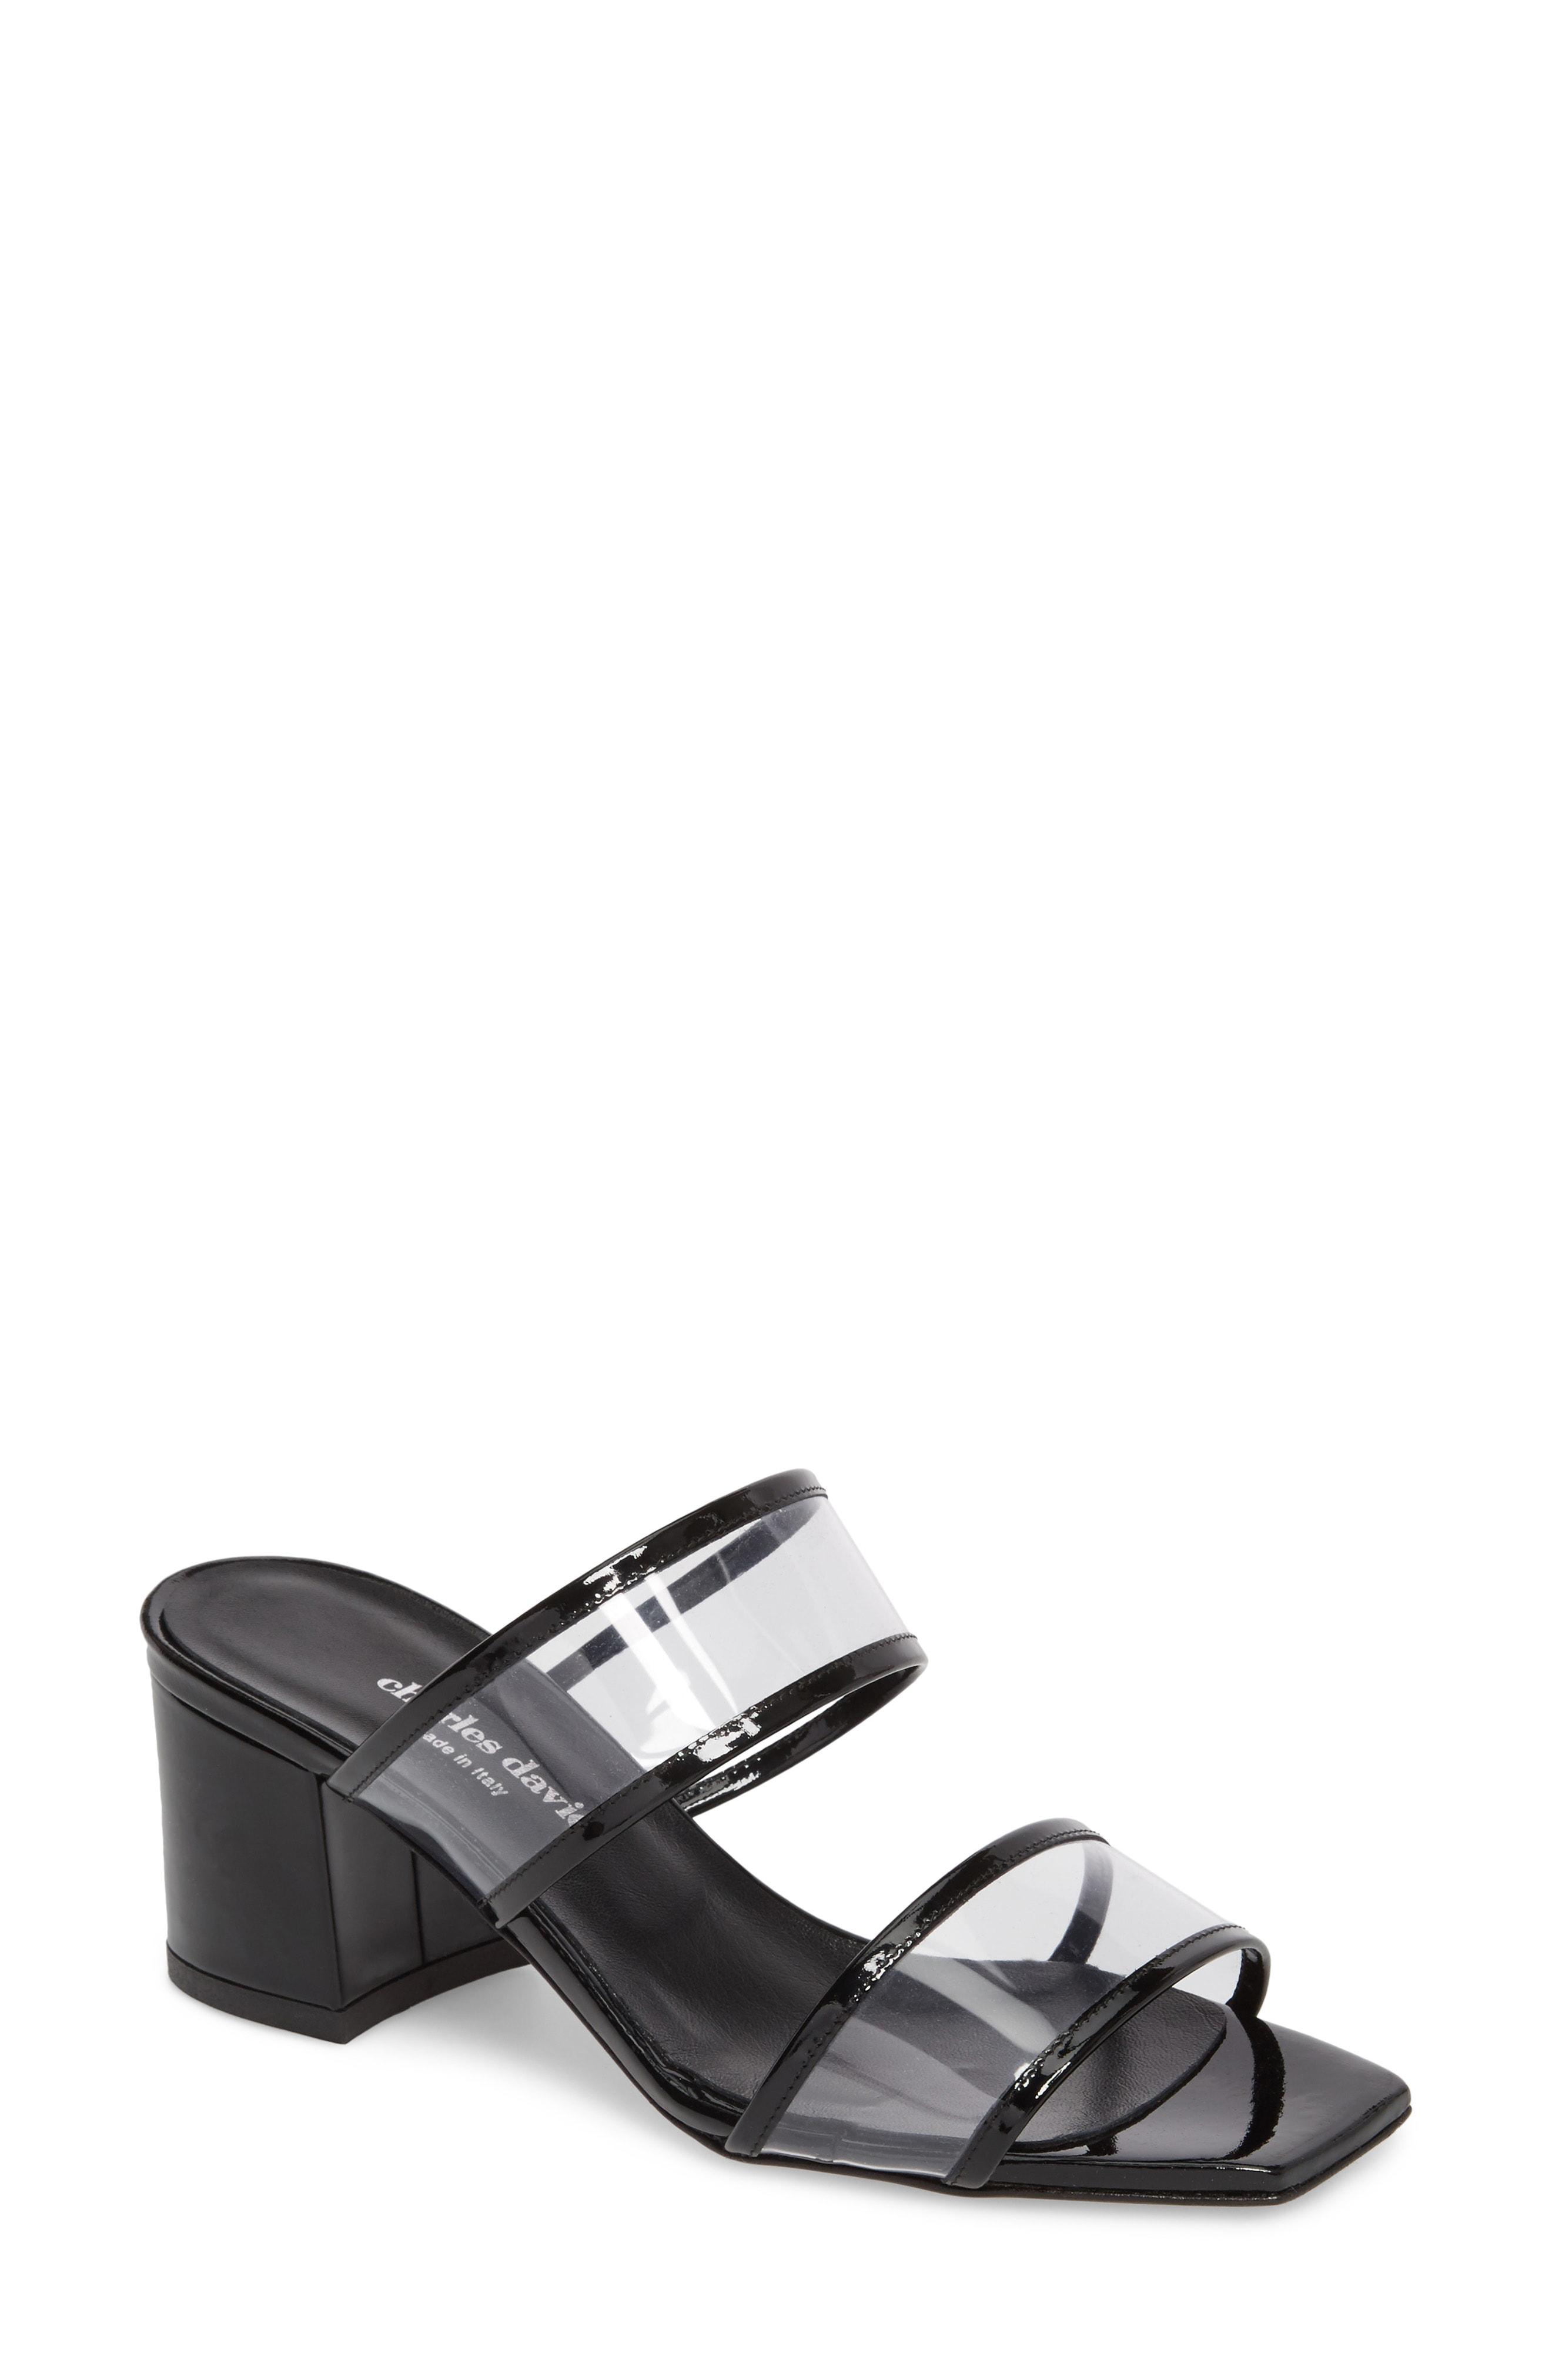 969ecd10a Charles David Women's Cally Patent Leather Illusion Block Heel Slide Sandals  In Black